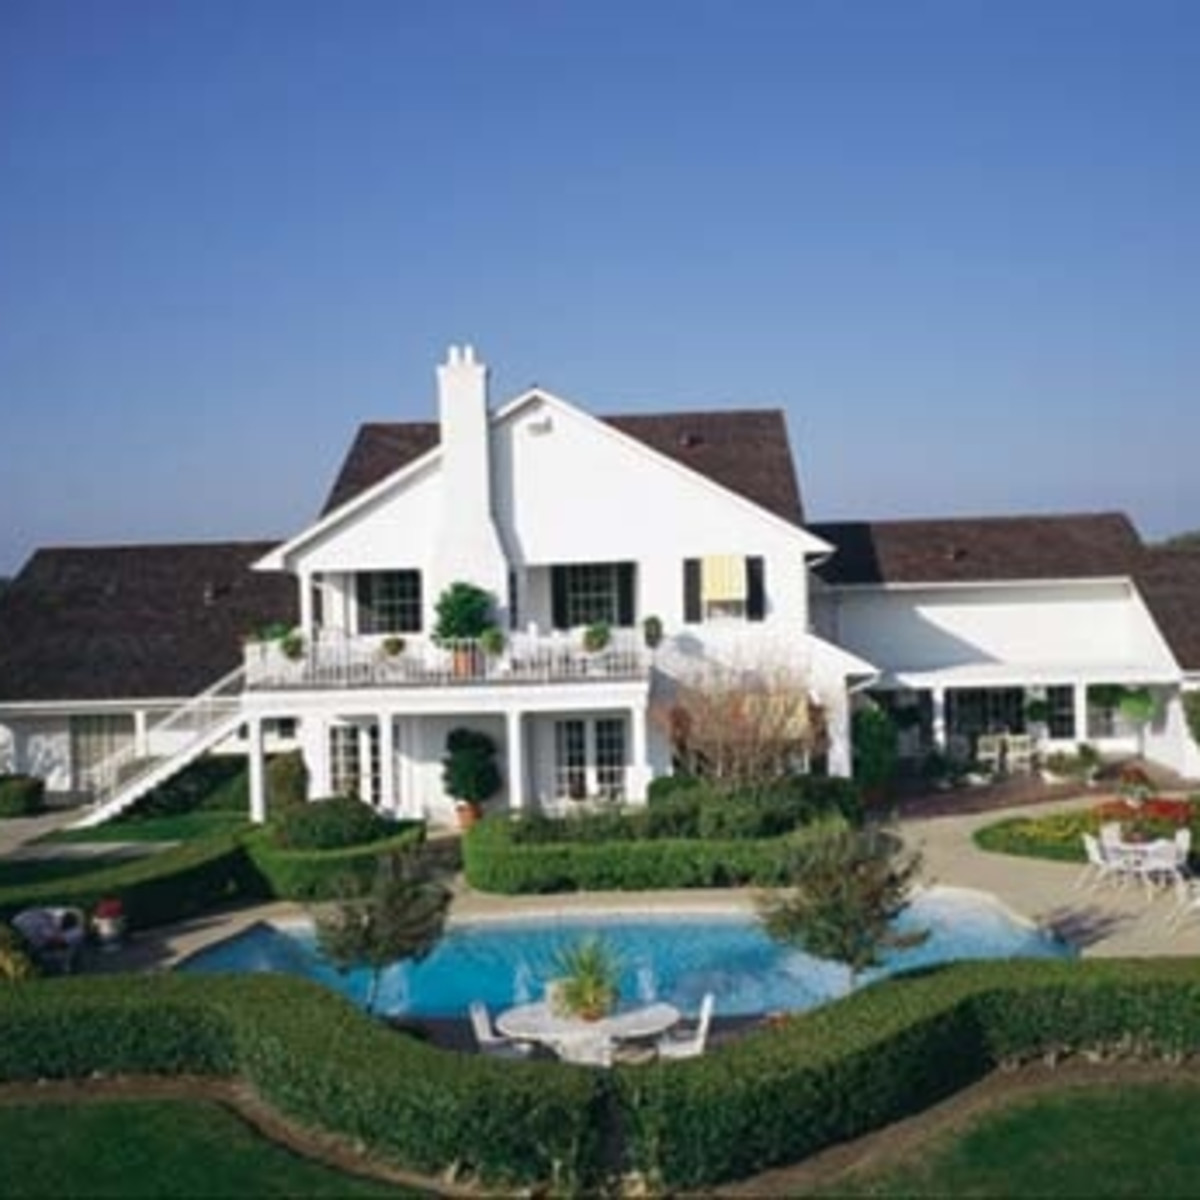 Southfork Ranch pool